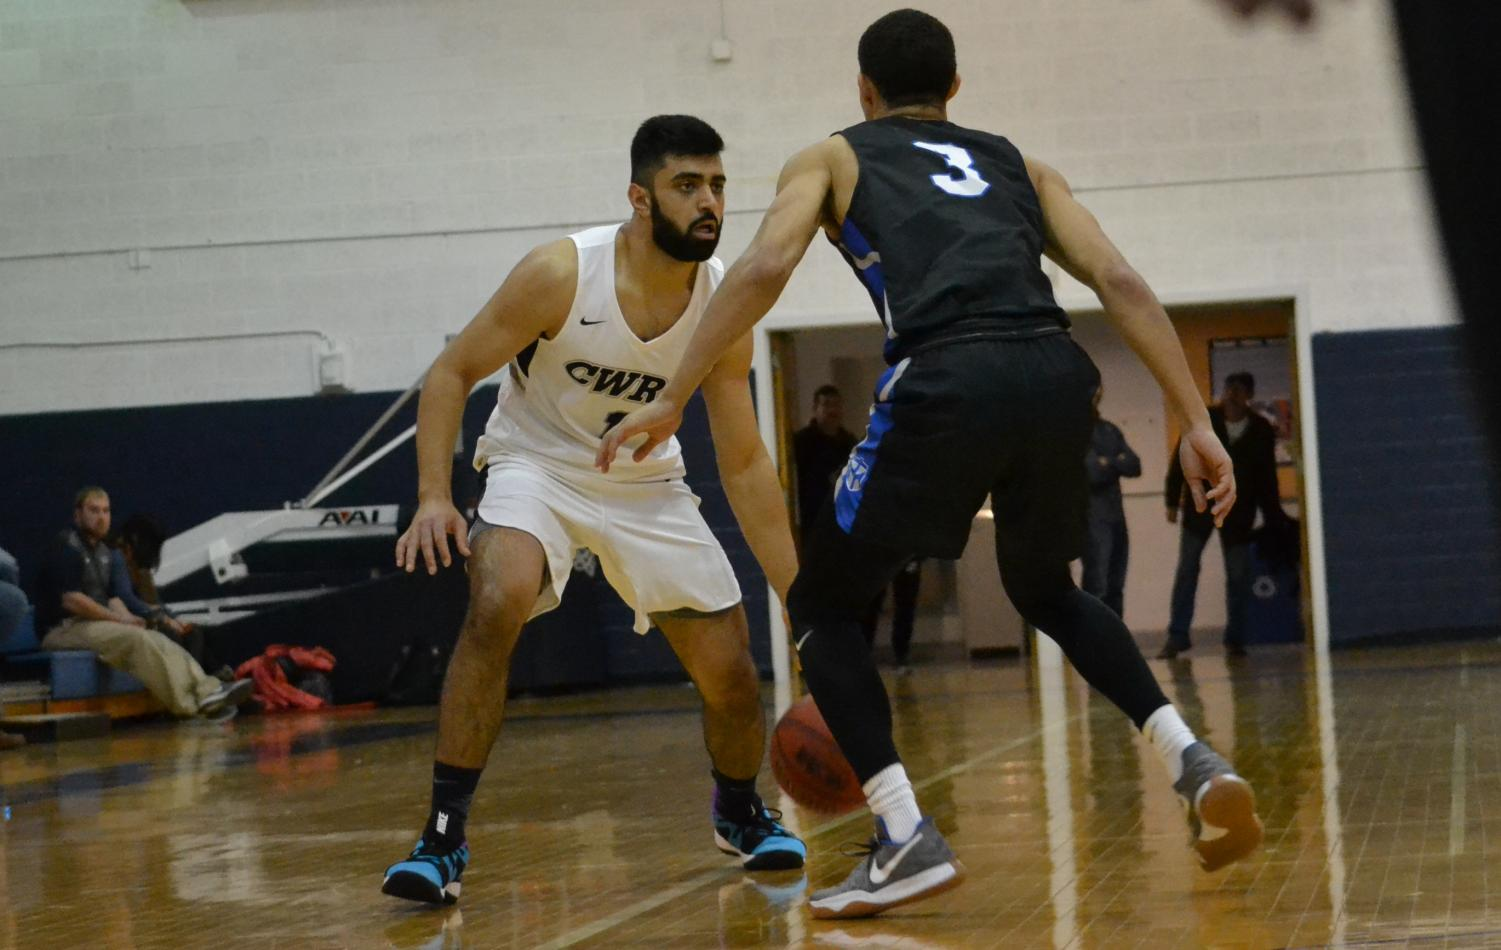 Third-year guard Monty Khela forced overtime with a clutch three pointer with one second remaining in regulation. The Spartans were outscored 15-9 in overtime to end their final game with a loss, finishing the season with a 9-16 overall record.